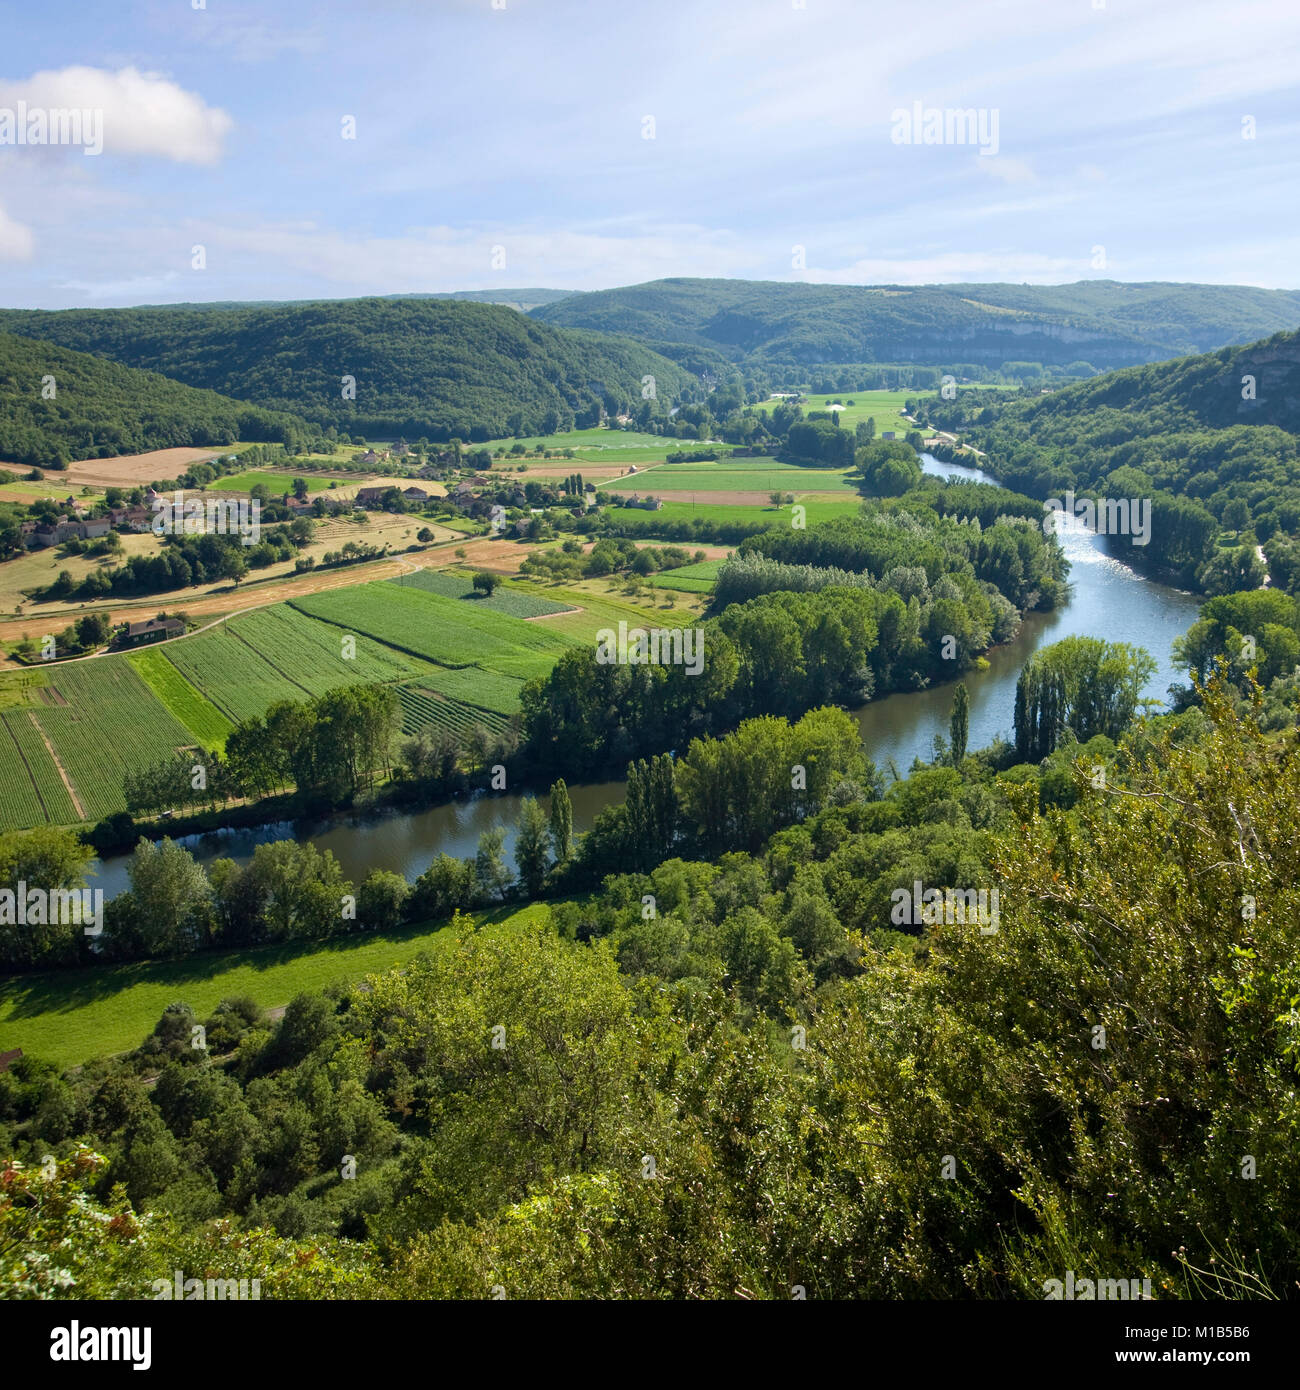 Europe, France, Quercy, view of the Lot Valley near St Martin Labouvel - Stock Image